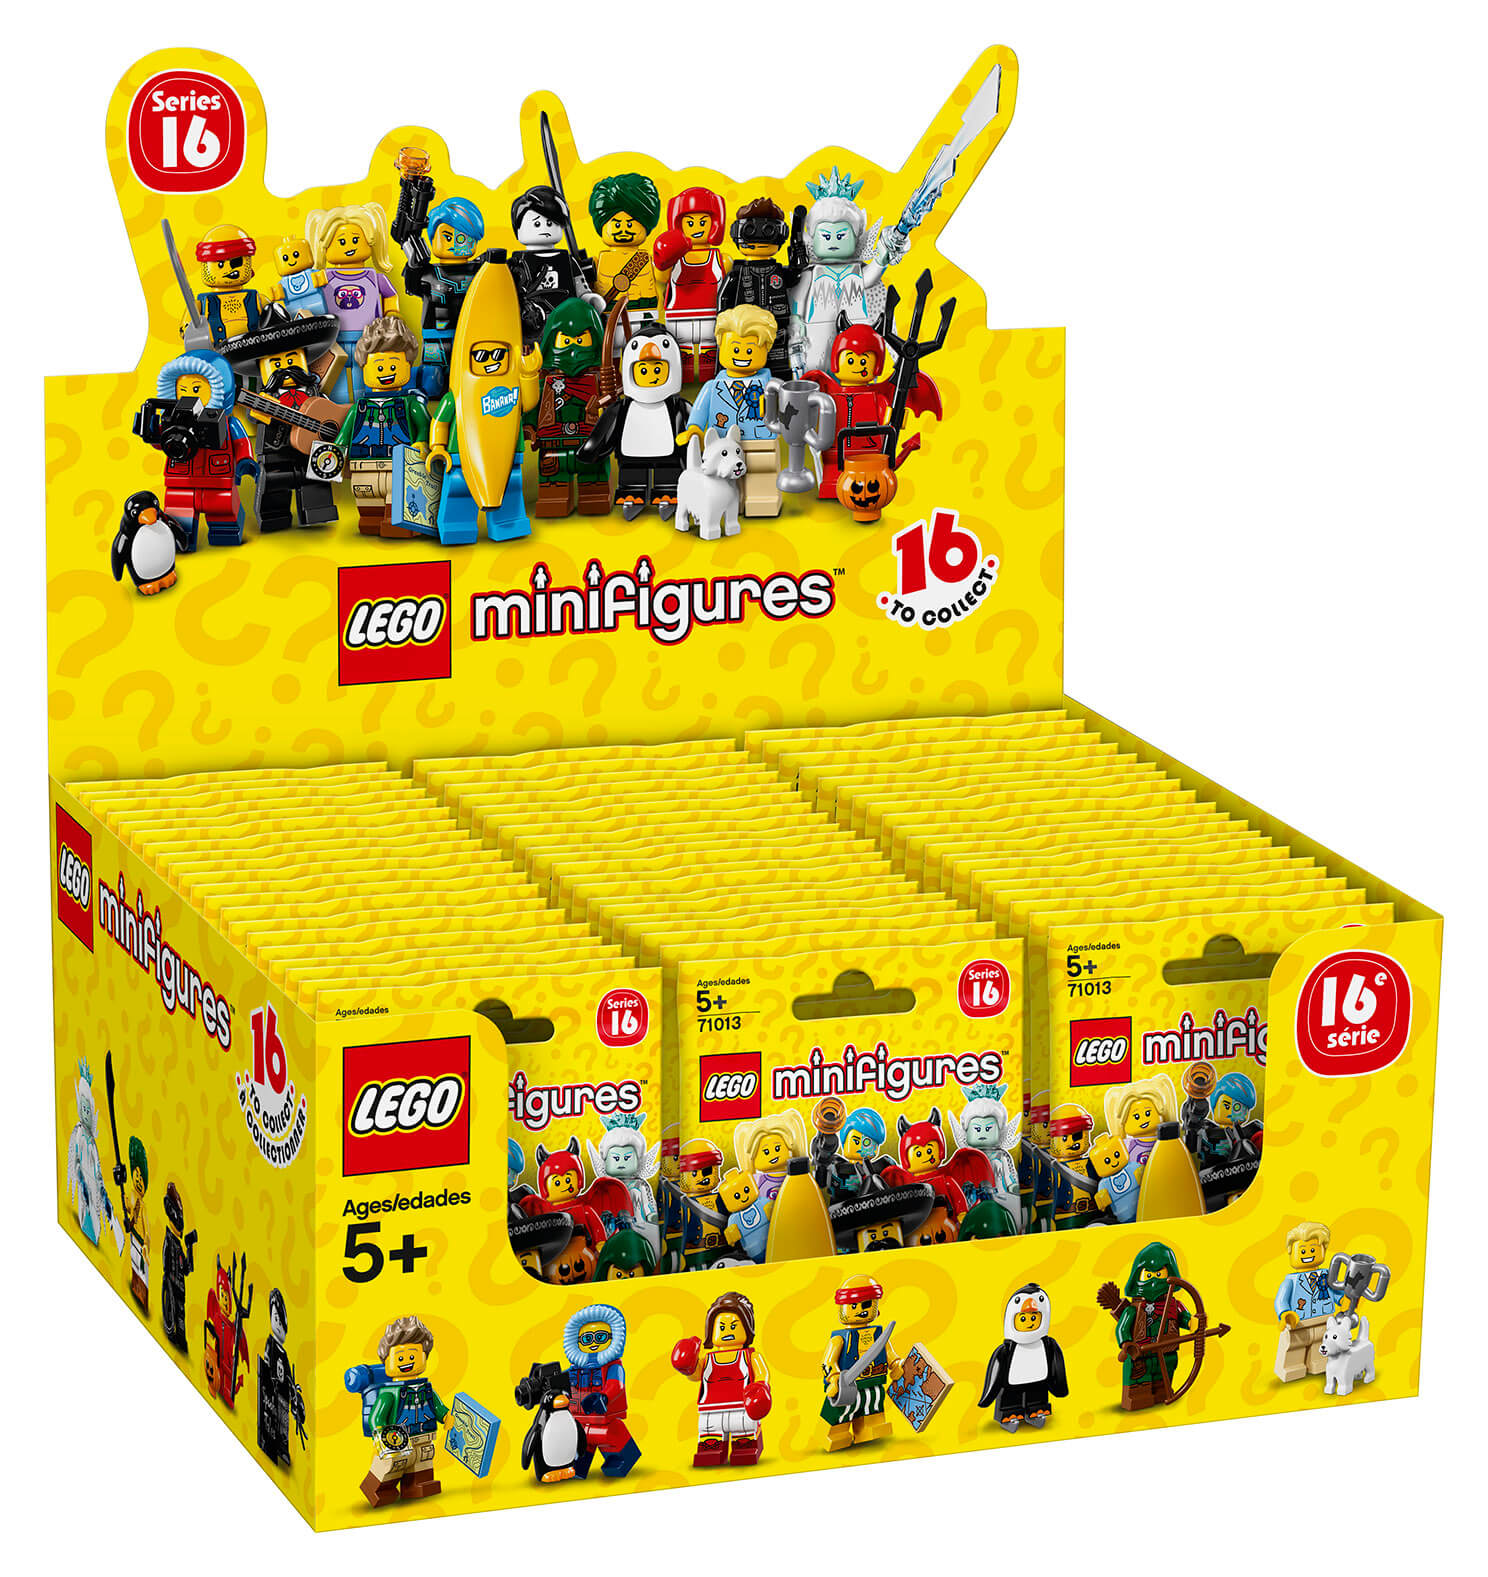 LEGO Minifigures 71013 Series 16 Complete Set of 16